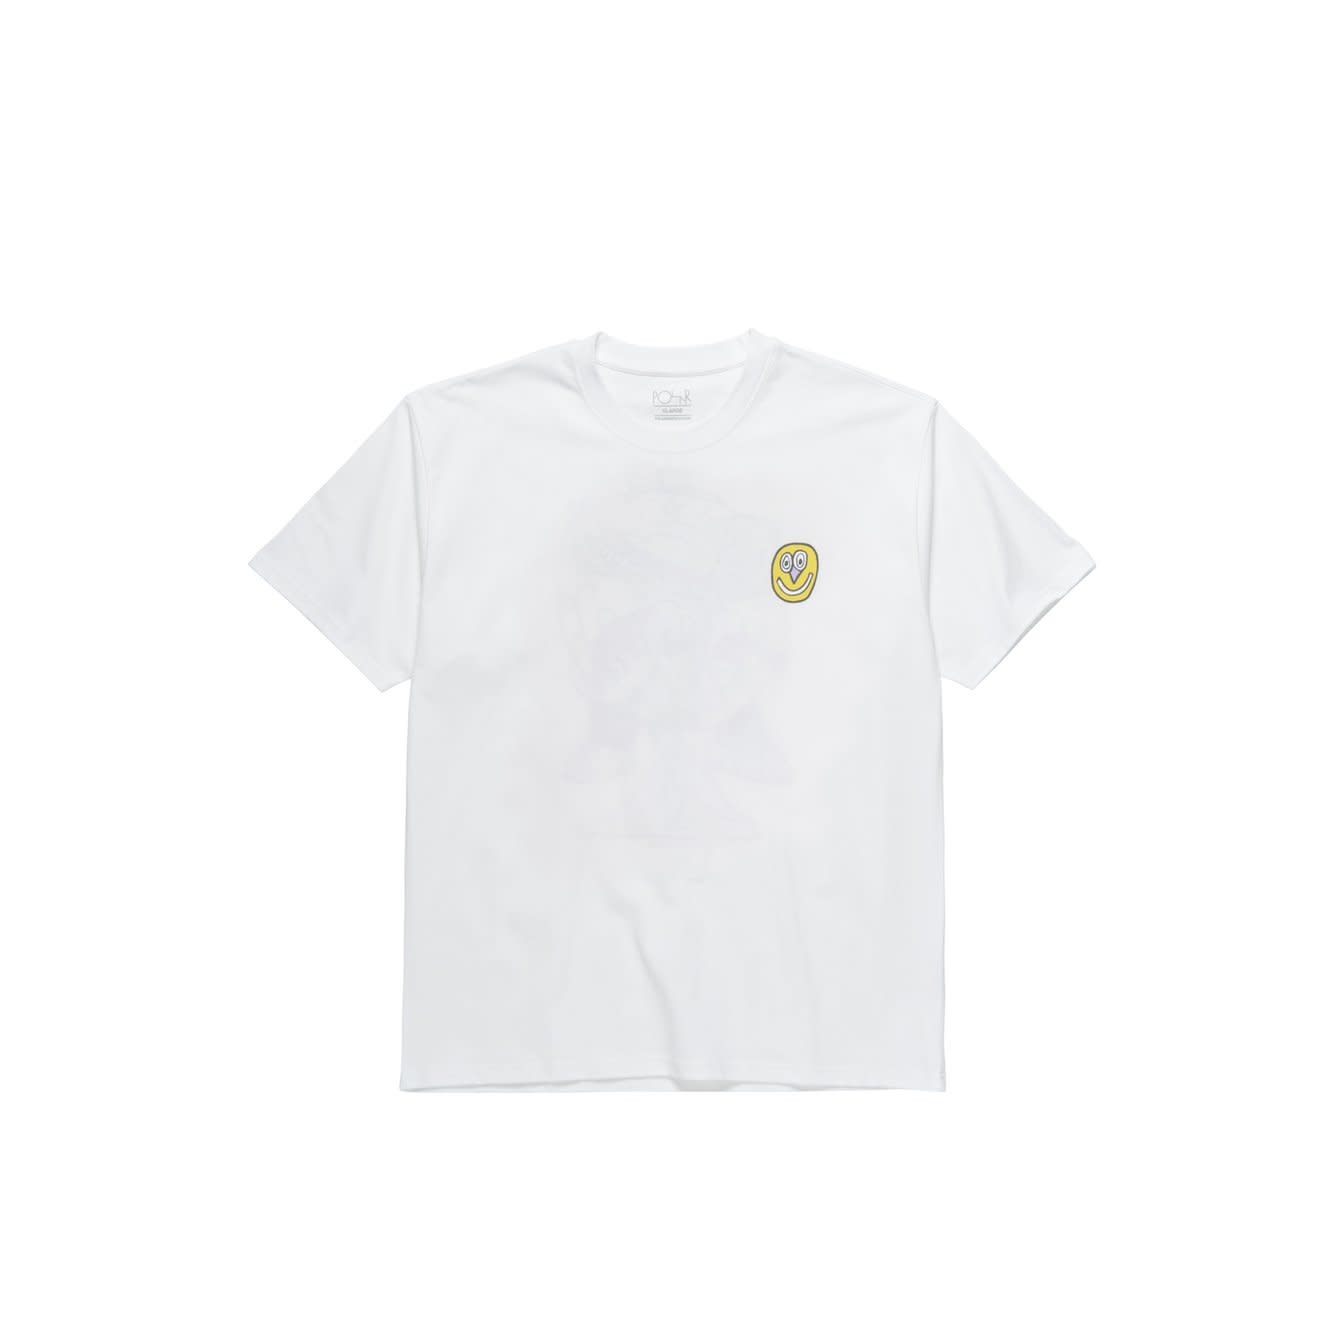 Polar Skate Co. Alien Tee White